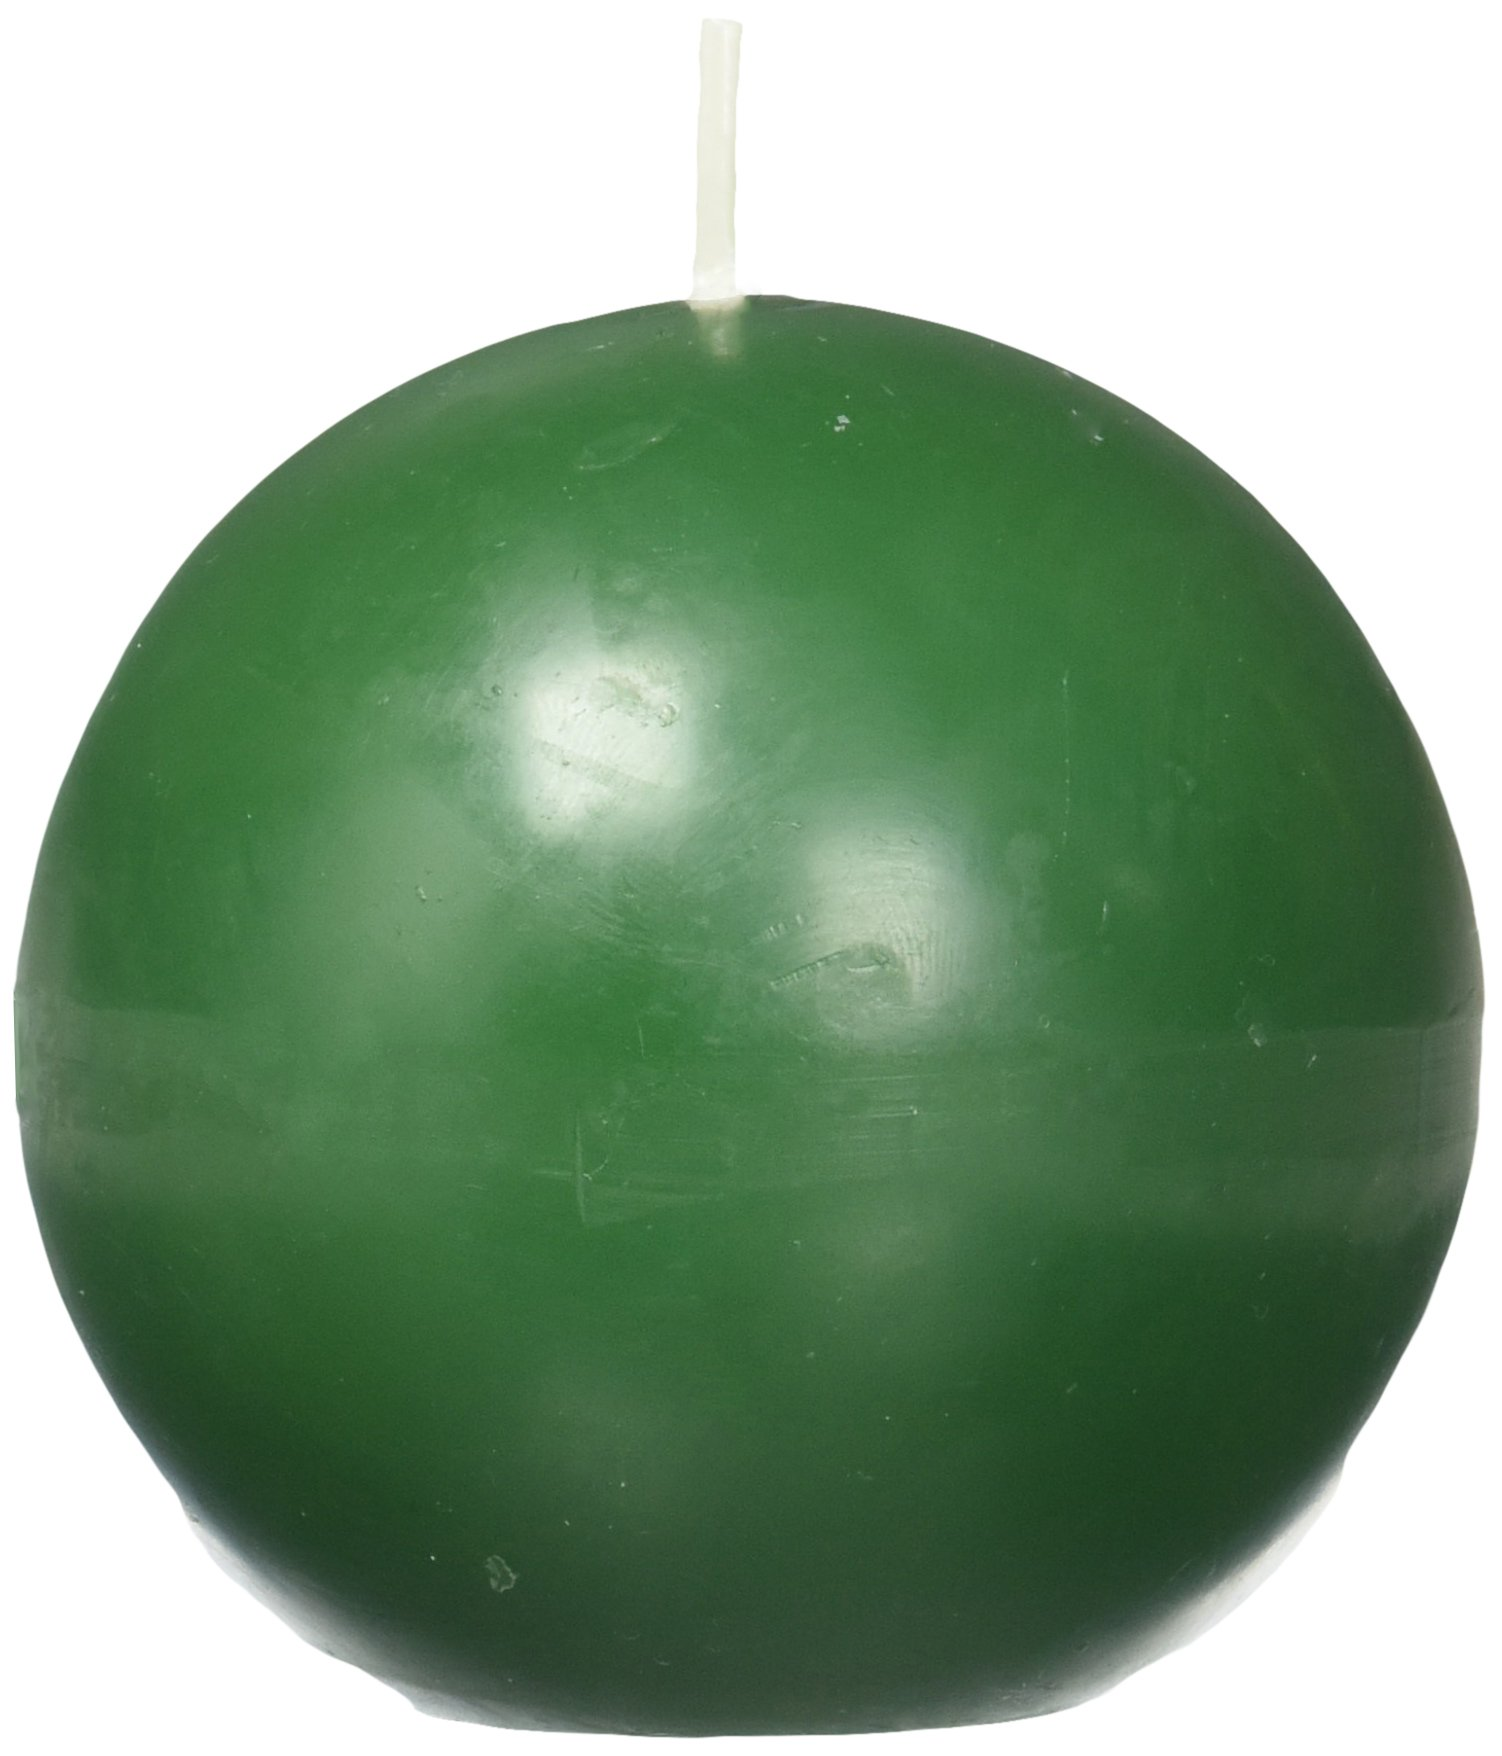 Zest Candle 6-Piece Ball Candles, 3-Inch, Hunter Green by Zest Candle